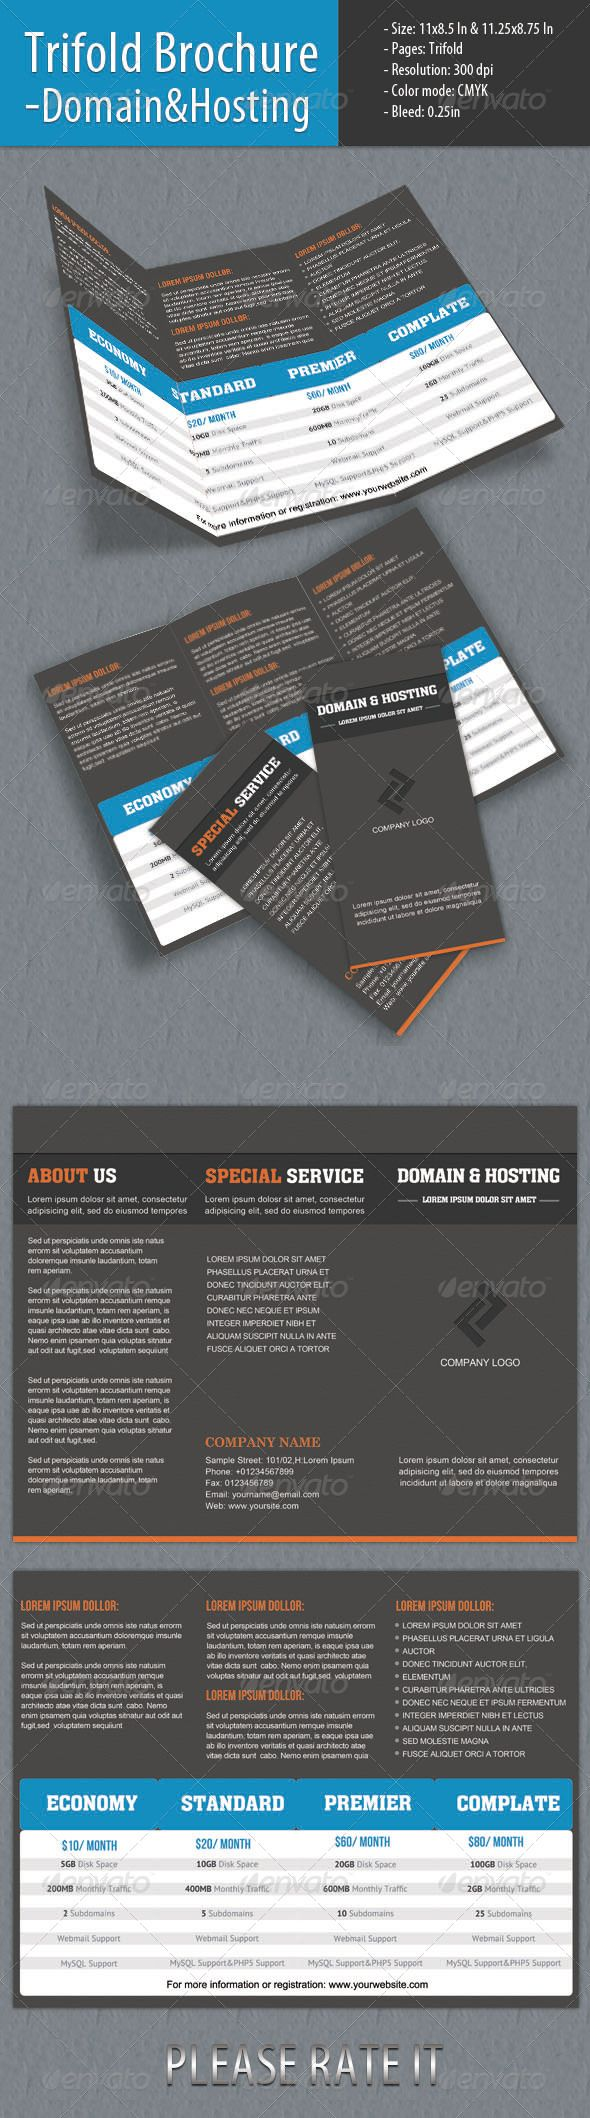 Trifold Brochure - Domain & Hosting